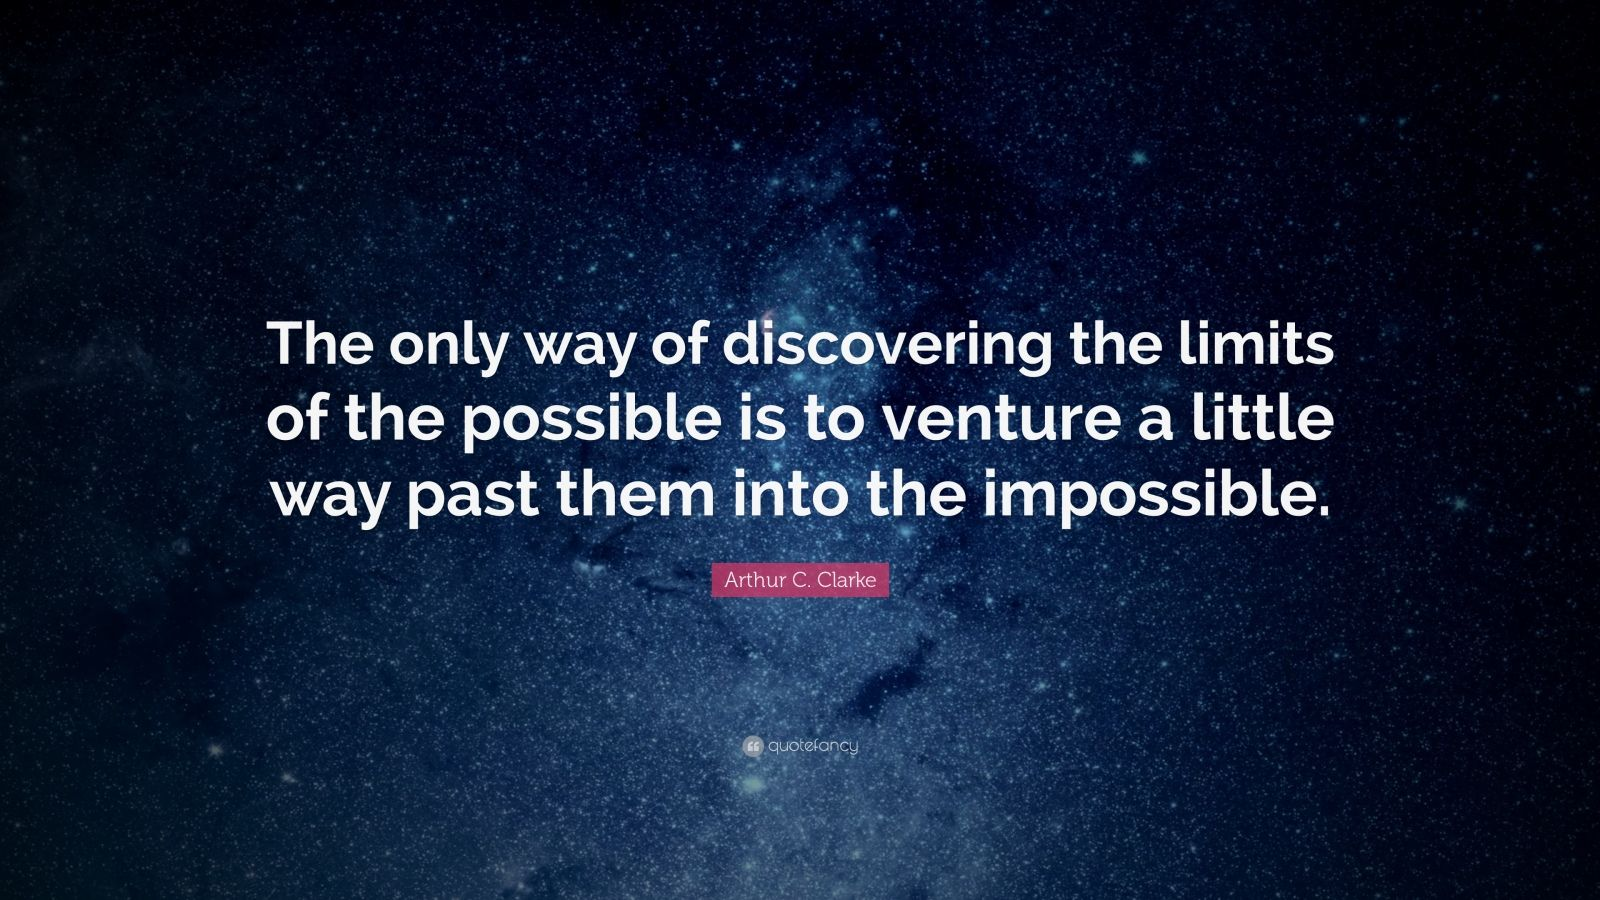 """Arthur C. Clarke Quote: """"The only way of discovering the limits of the possible is to venture a little way past them into the impossible."""""""